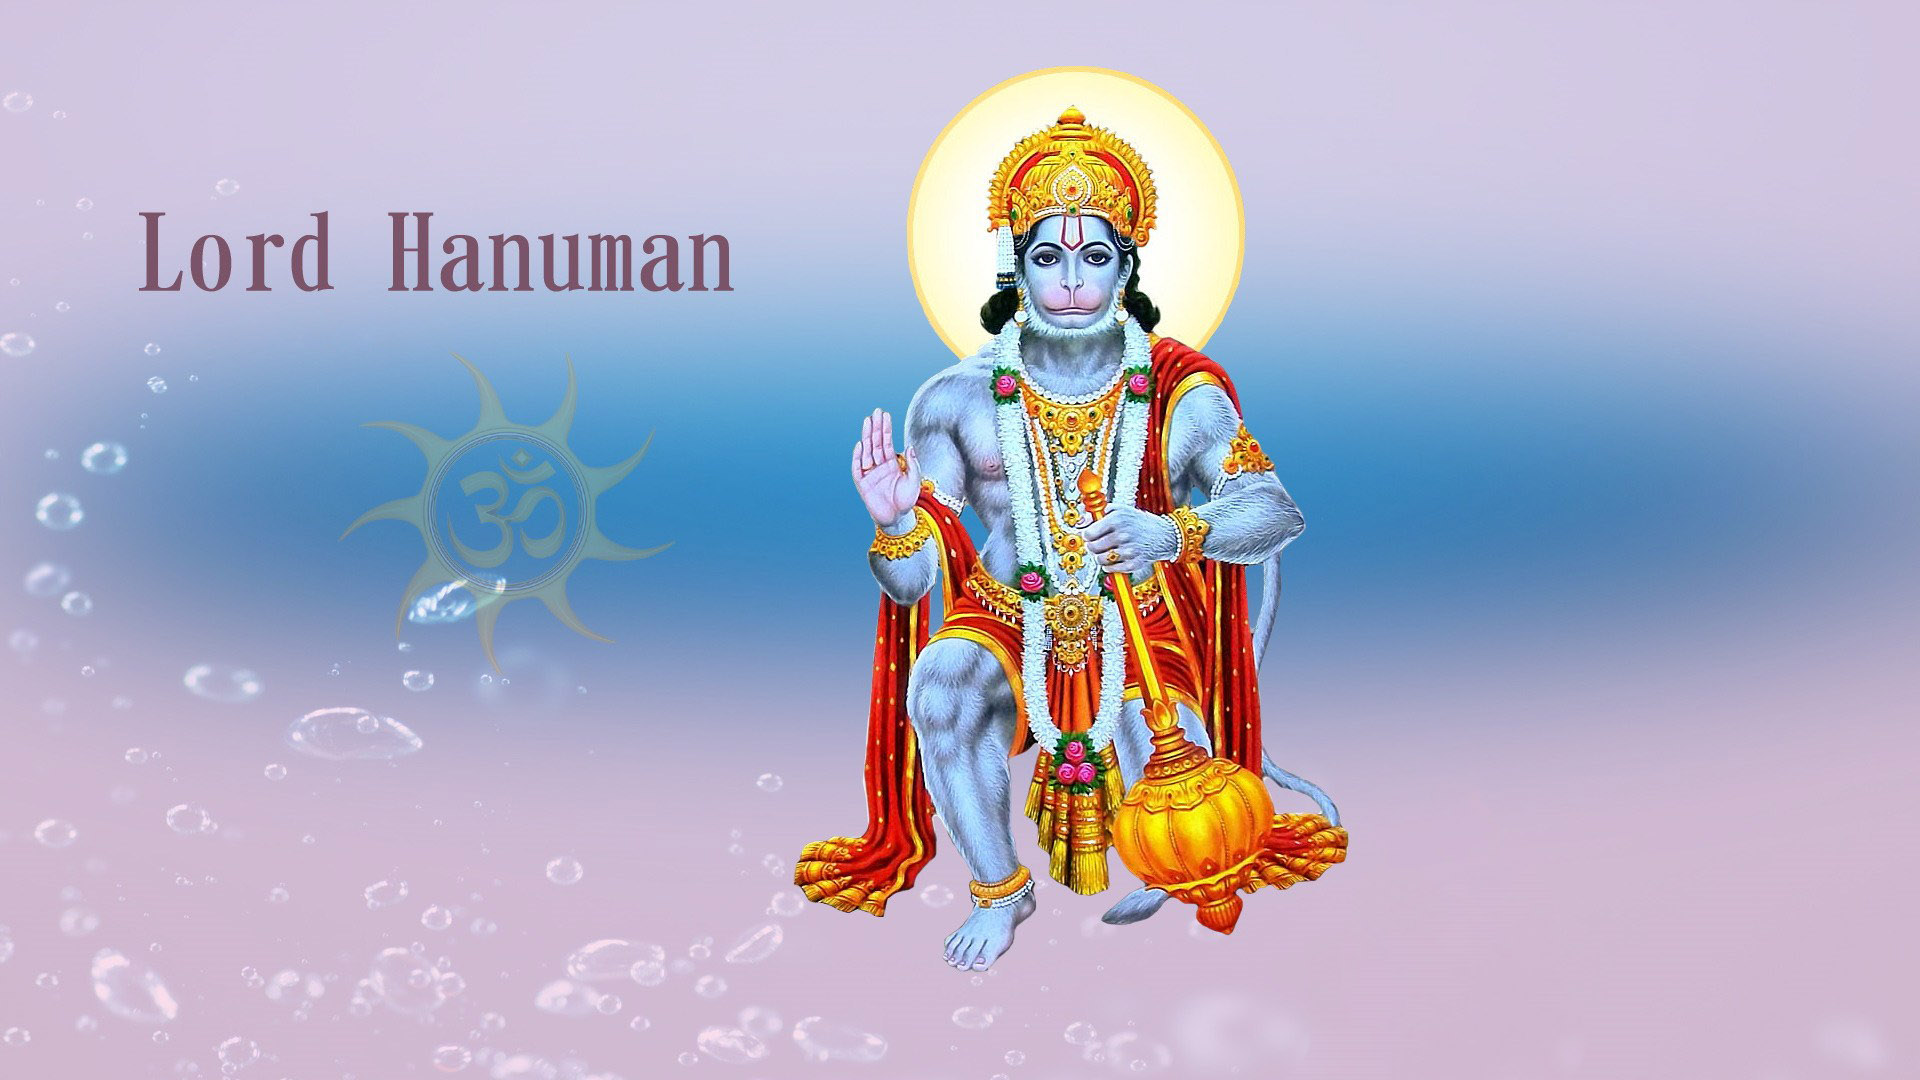 hanuman ji facts cover picture